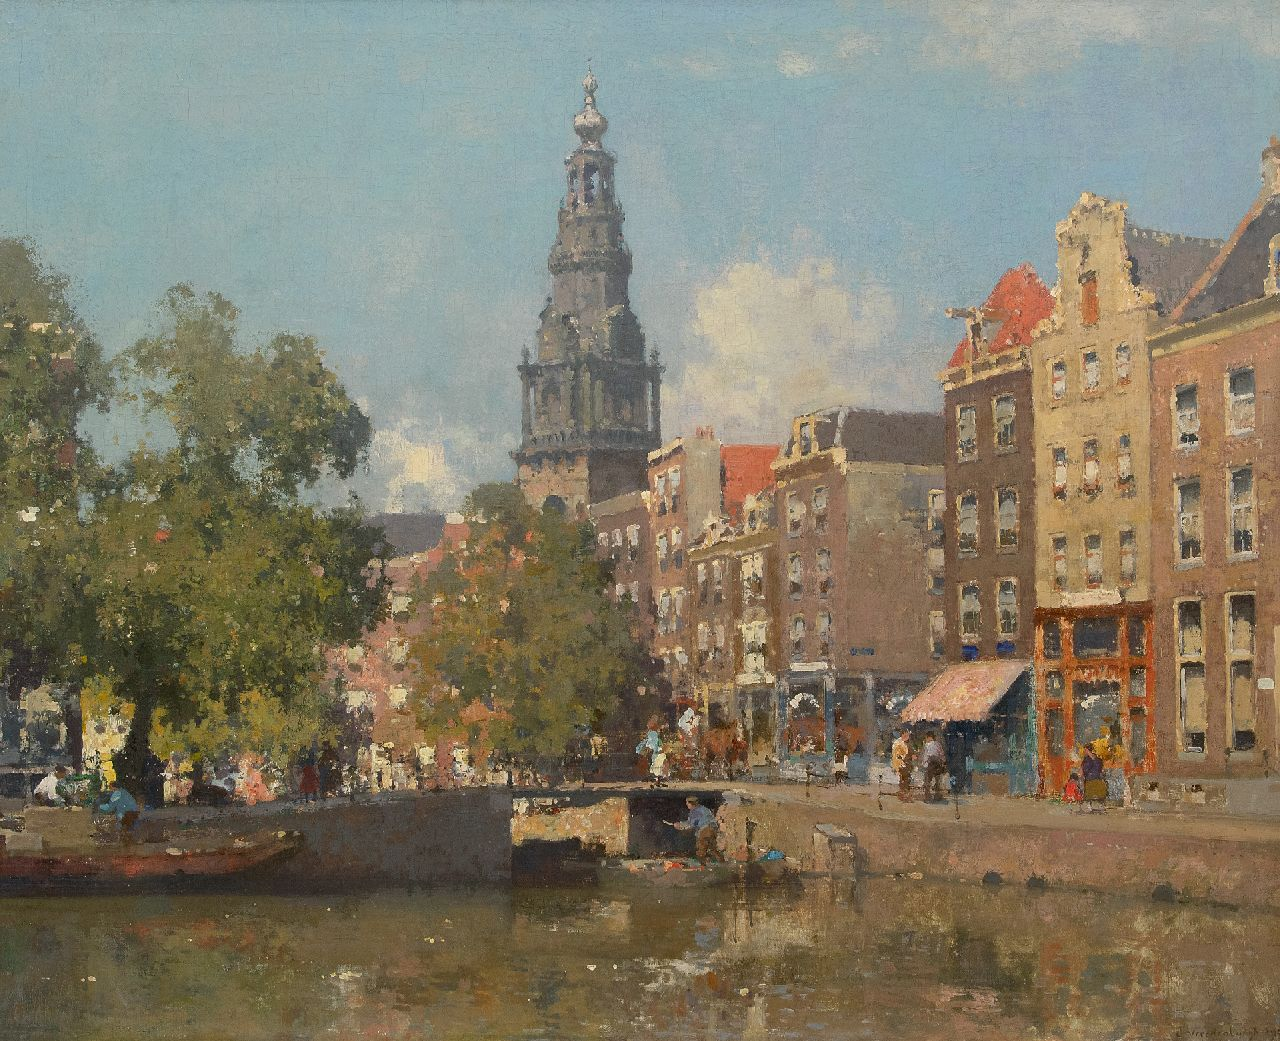 Vreedenburgh C.  | Cornelis Vreedenburgh | Paintings offered for sale | A view of the Raamgracht and the tower of the Zuiderkerk, Amsterdam, oil on canvas 77.0 x 94.0 cm, signed l.r. and dated 1927